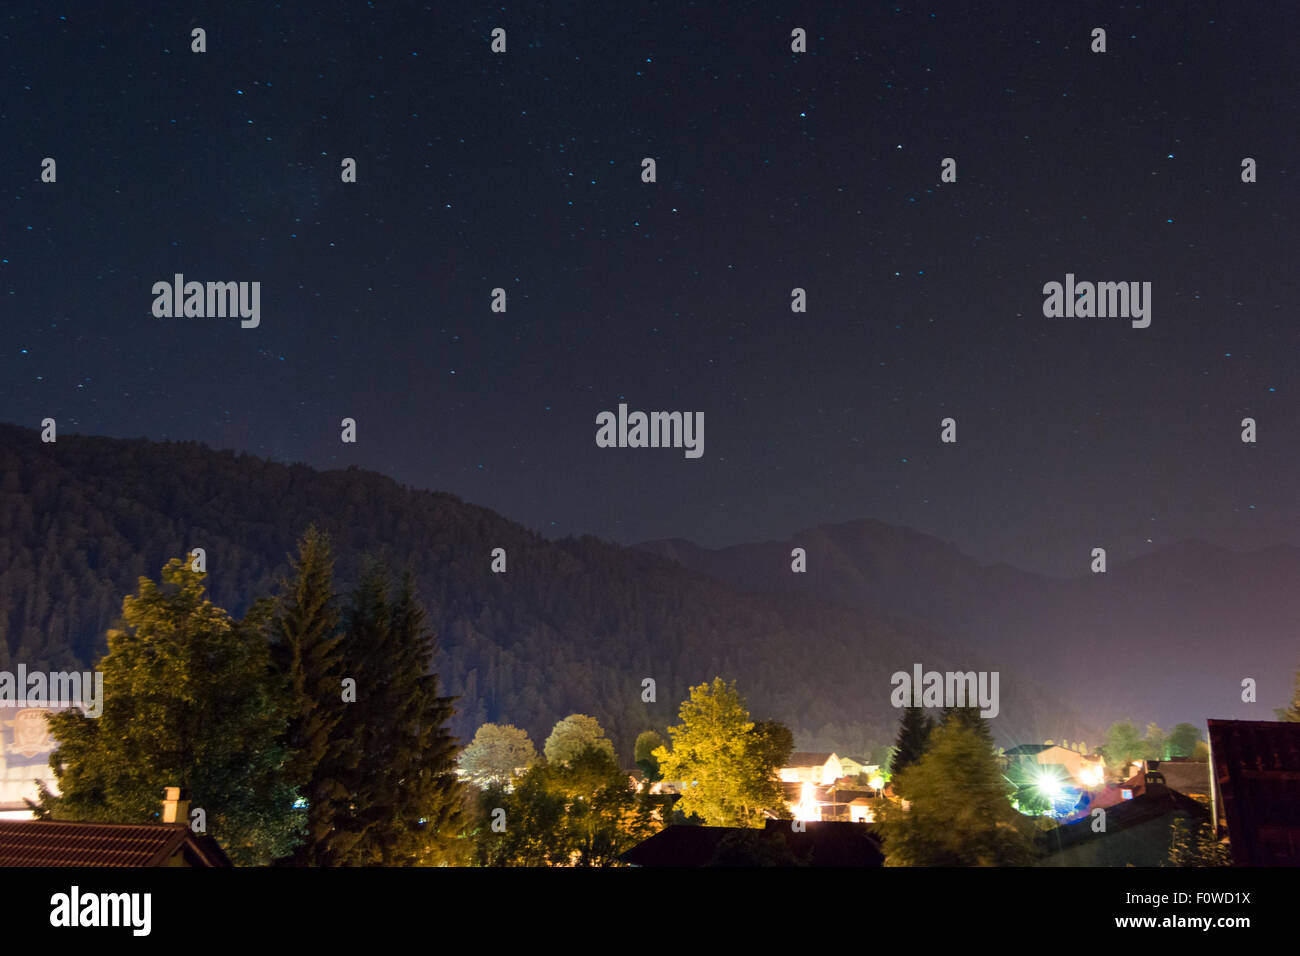 Mountain resort at night - Stock Image